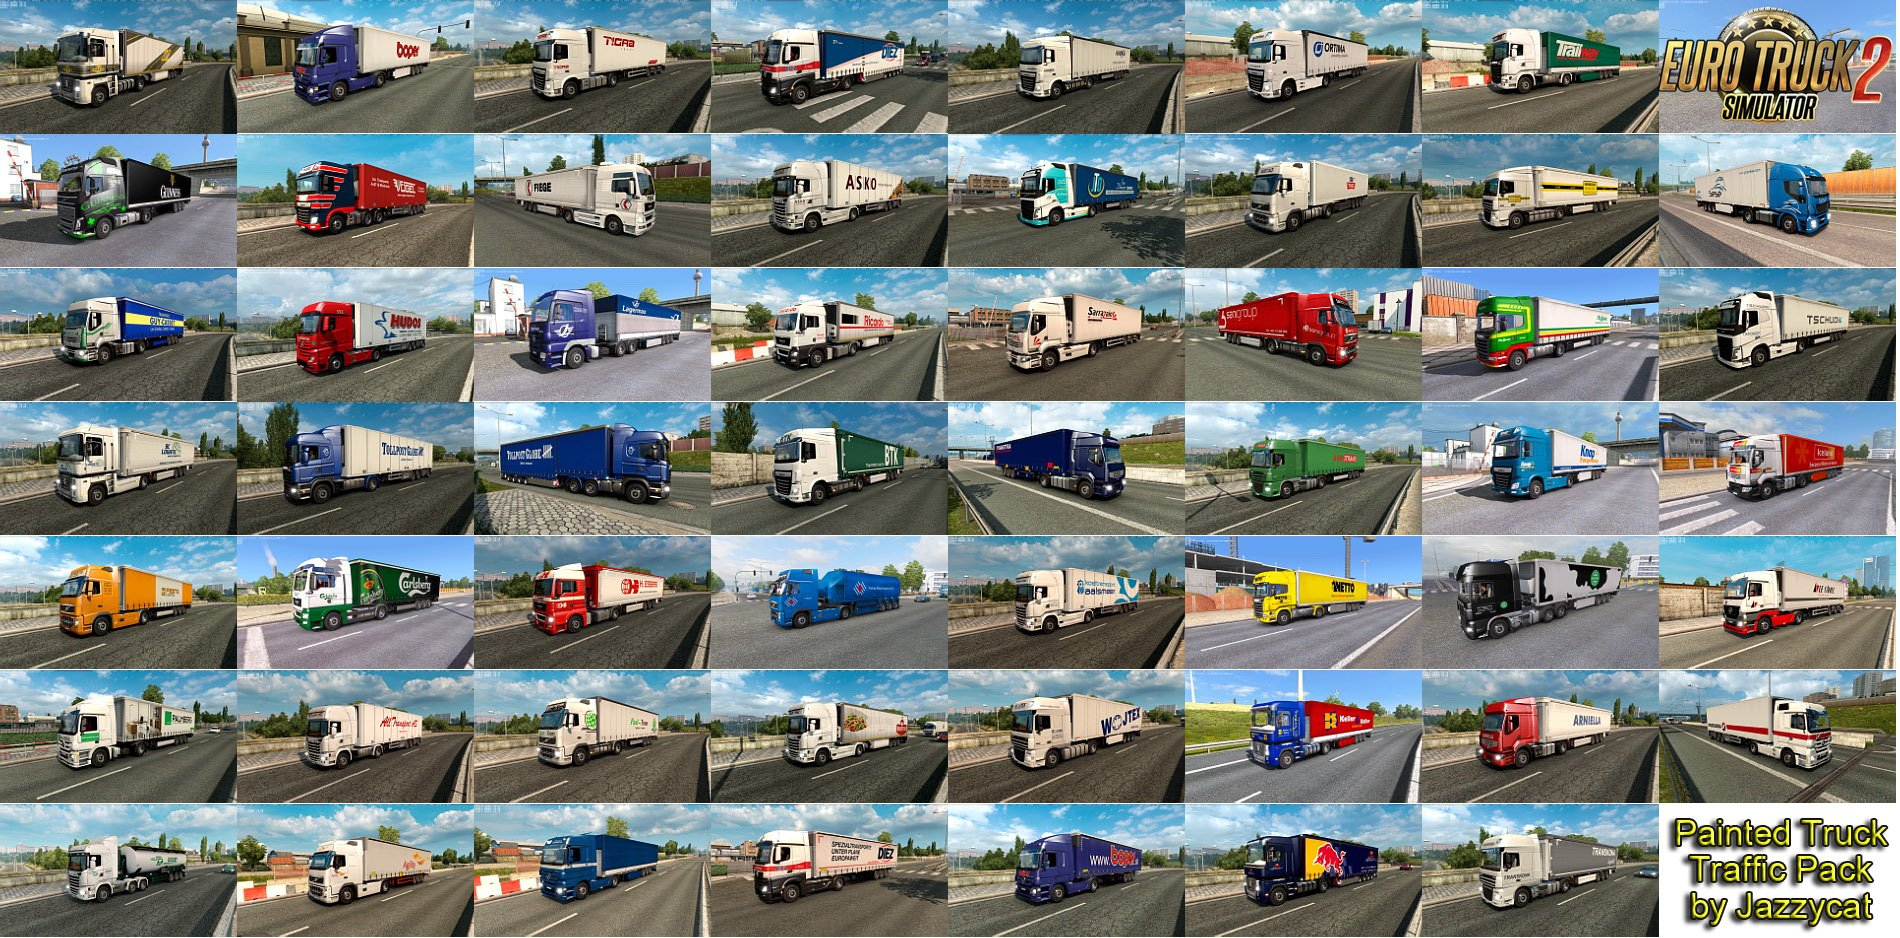 Painted Truck Traffic Pack v8.0.1 by Jazzycat